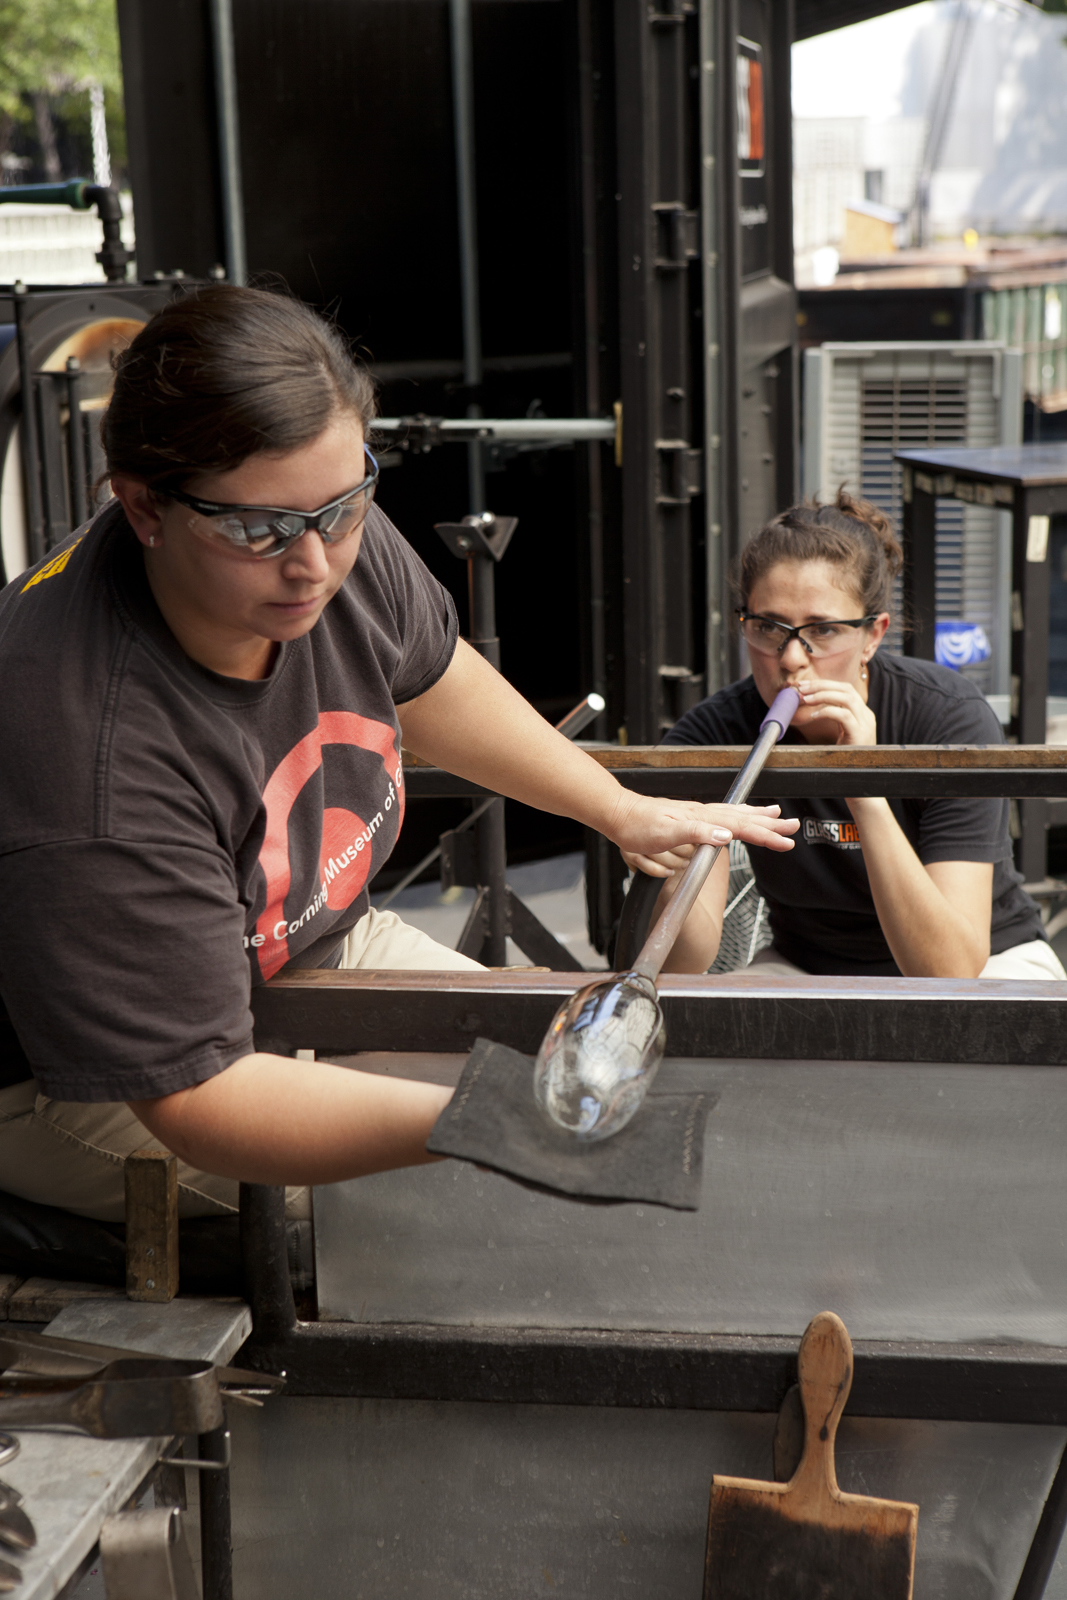 Gaffers Catherine Ayers and Annette Sheppard work with Dan Ipp and Tom Zogas at GlassLab in Corning